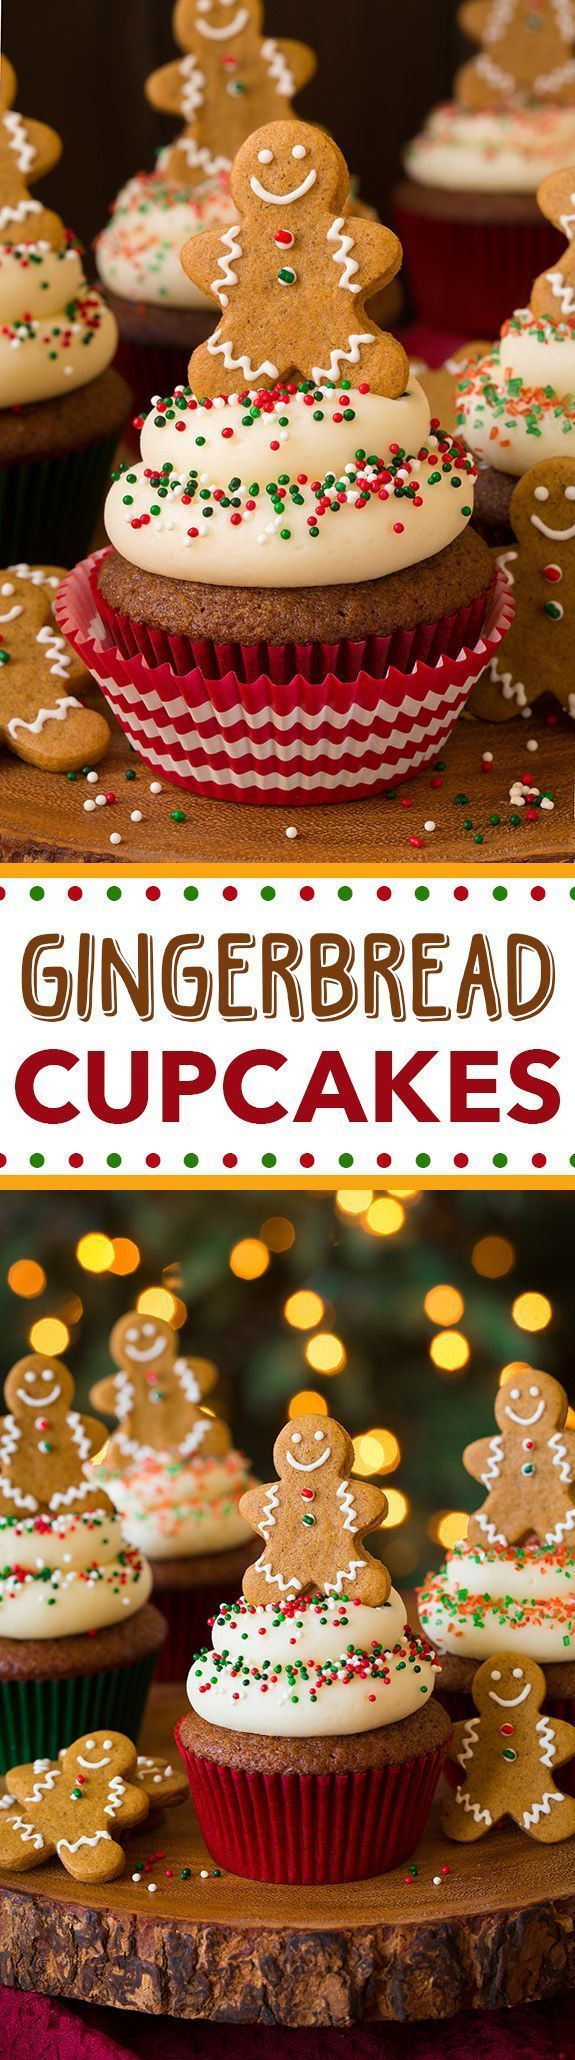 25+ best ideas about Christmas cupcakes decoration on ...